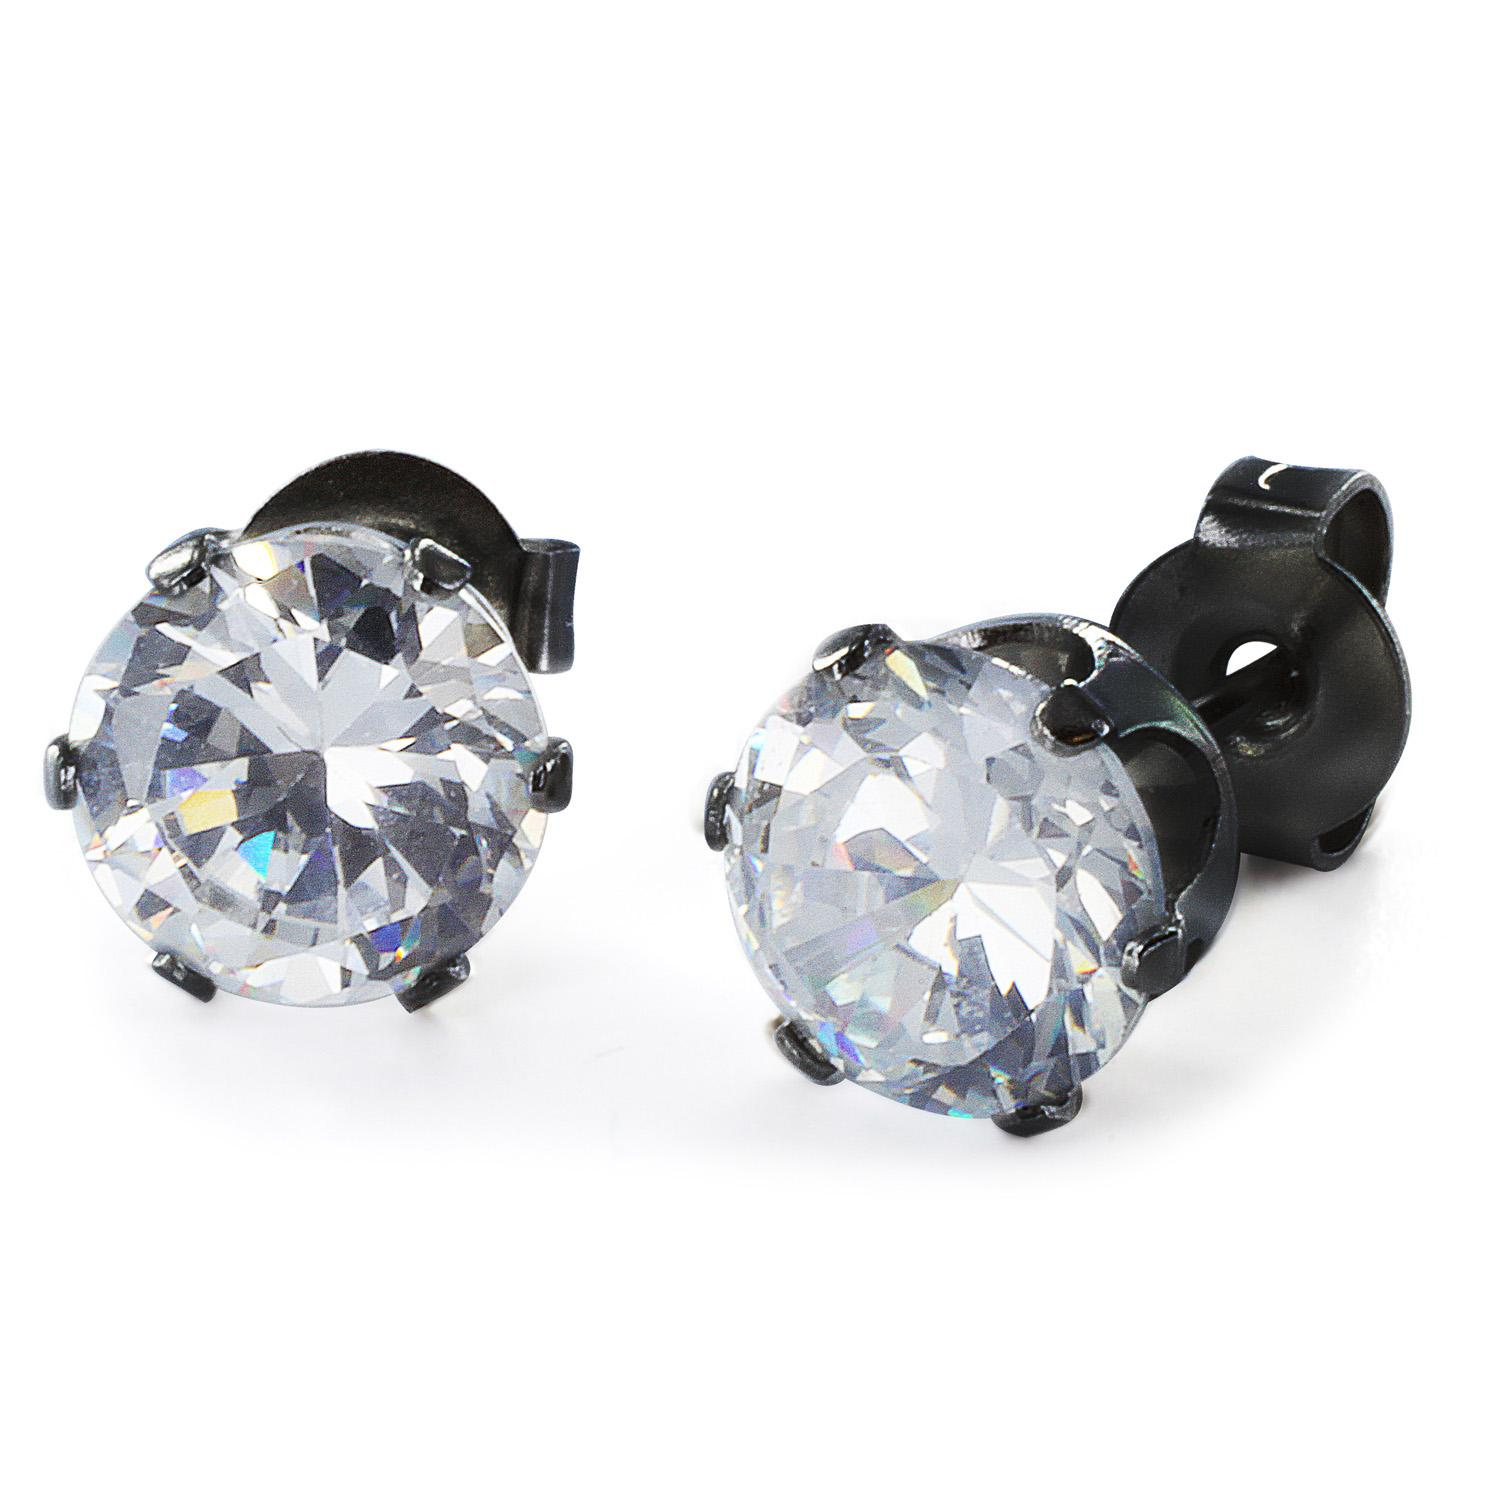 Black Plated Stainless Steel Stud Earrings with Round Clear CZ - 6 mm